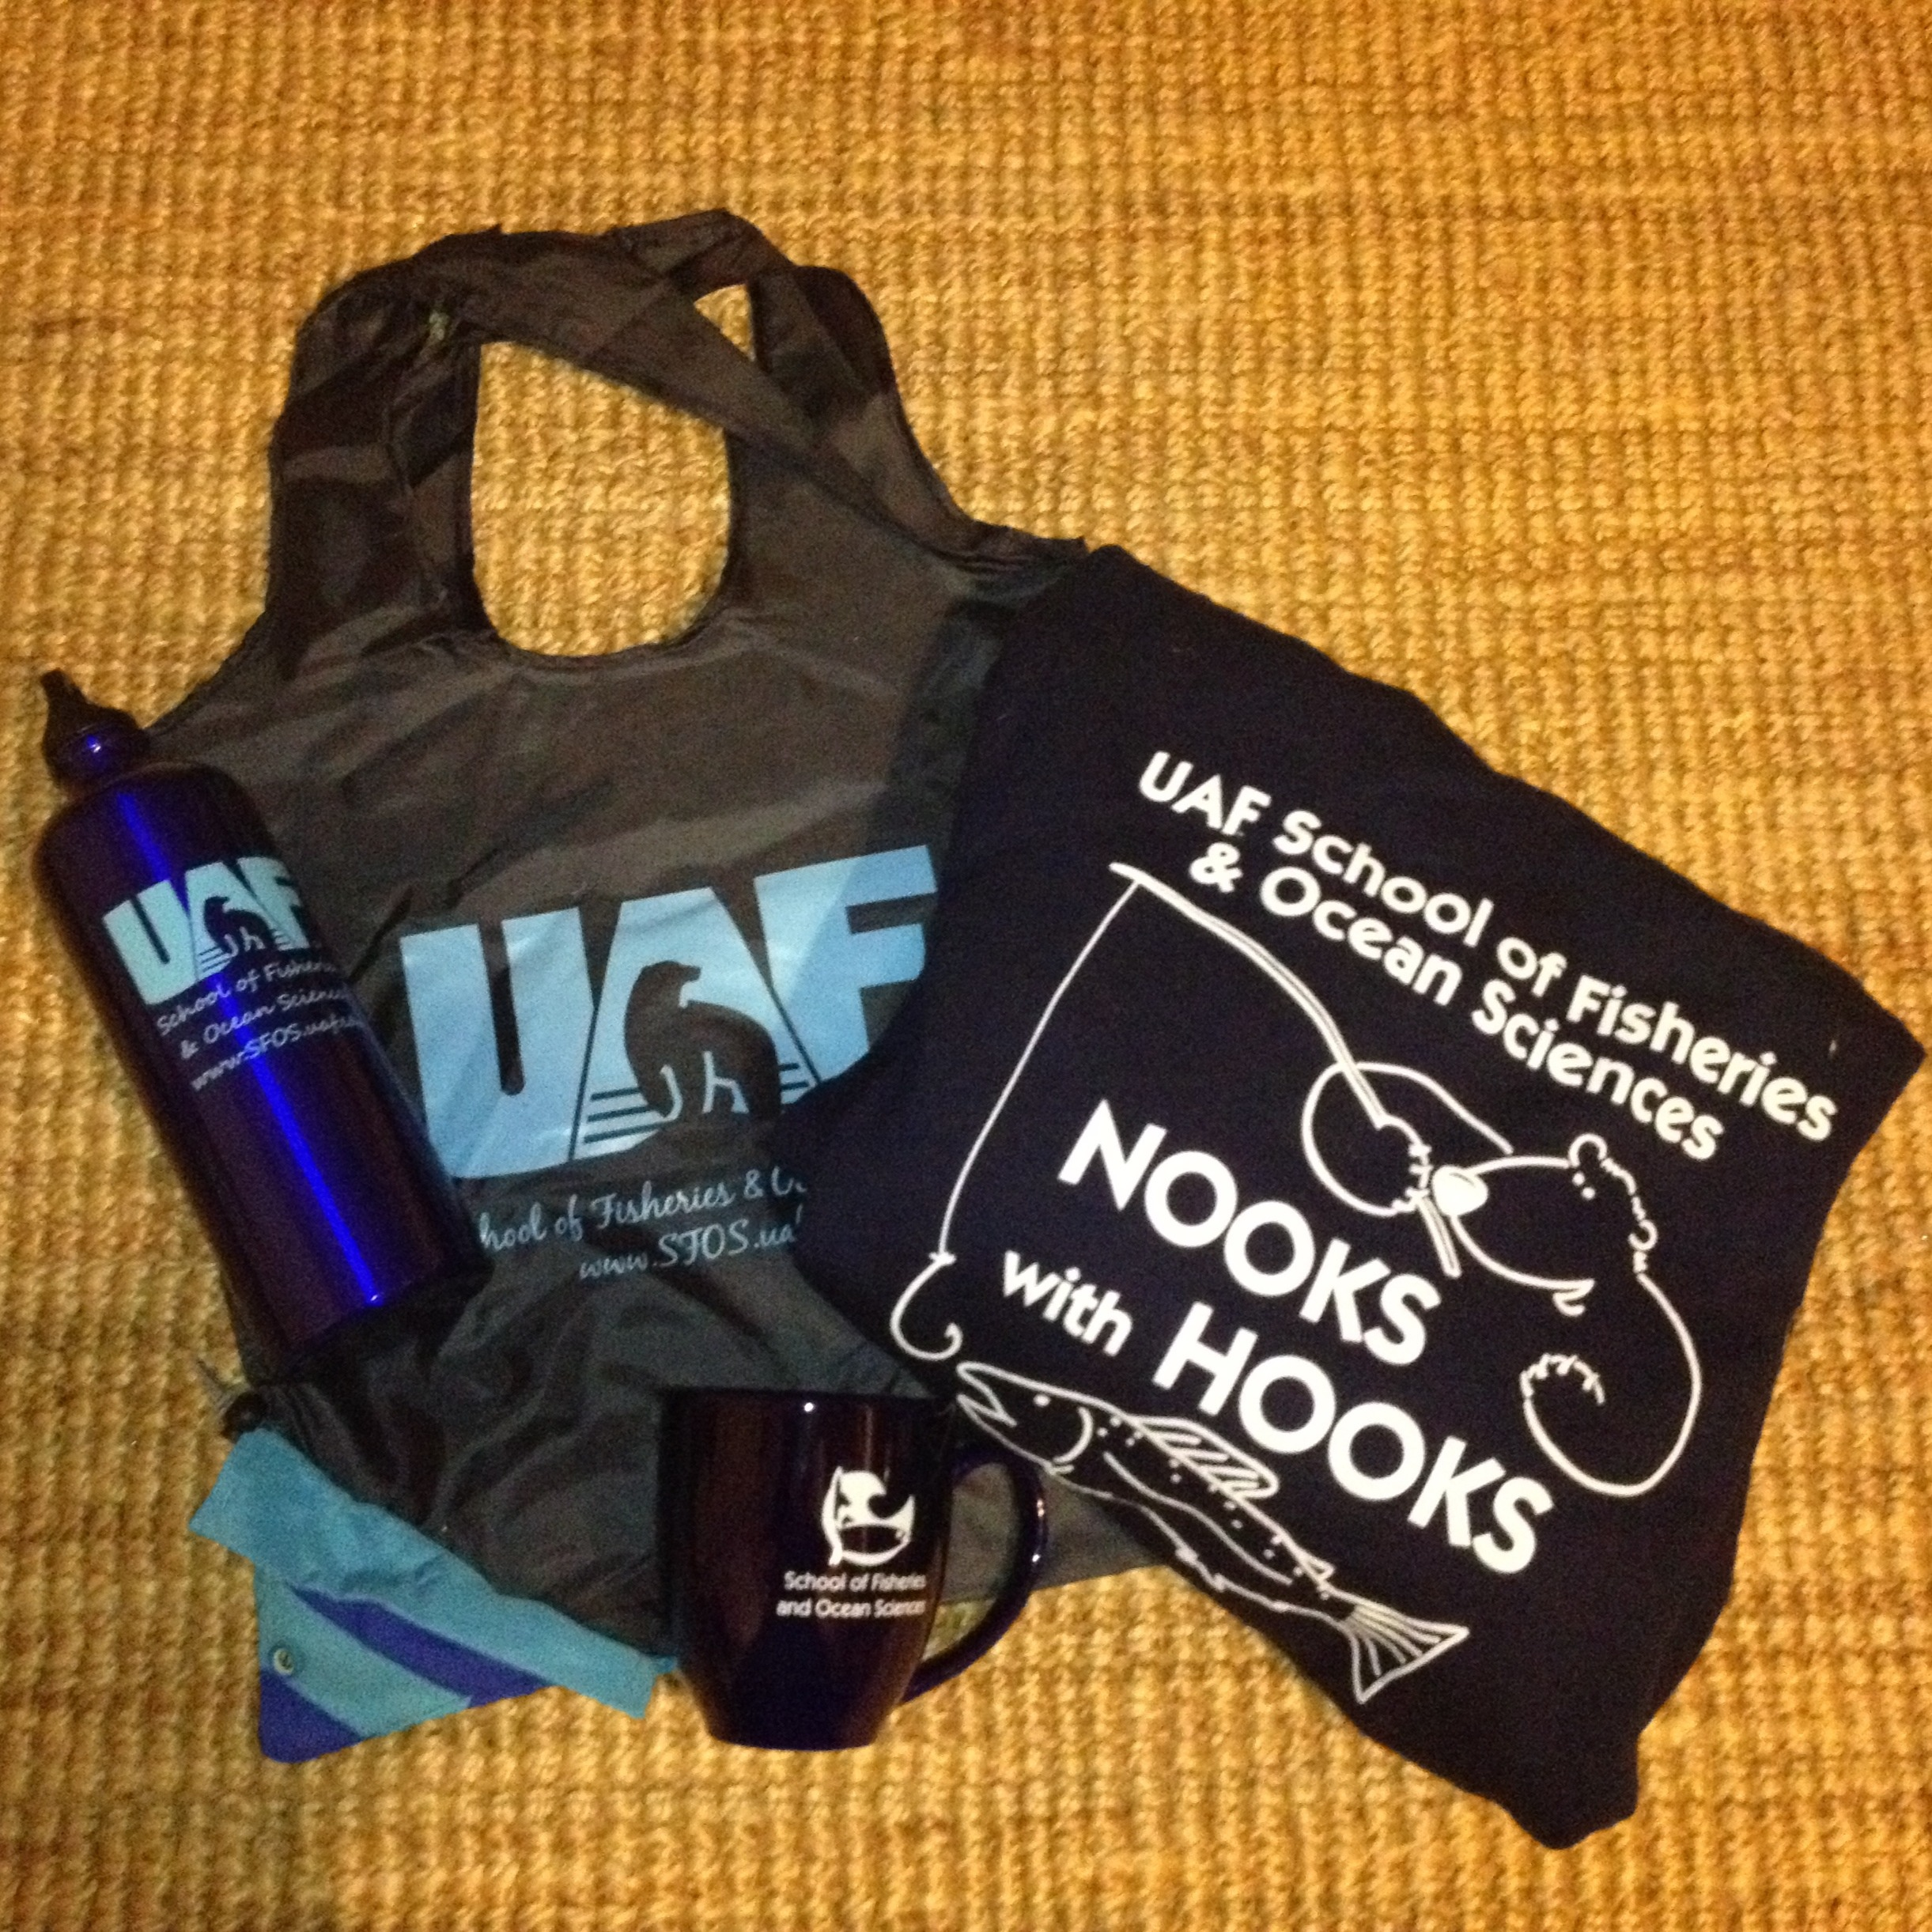 Donate and you can win this UAF prize pack. The sweatshirt alone enables you to see Russia from your house.